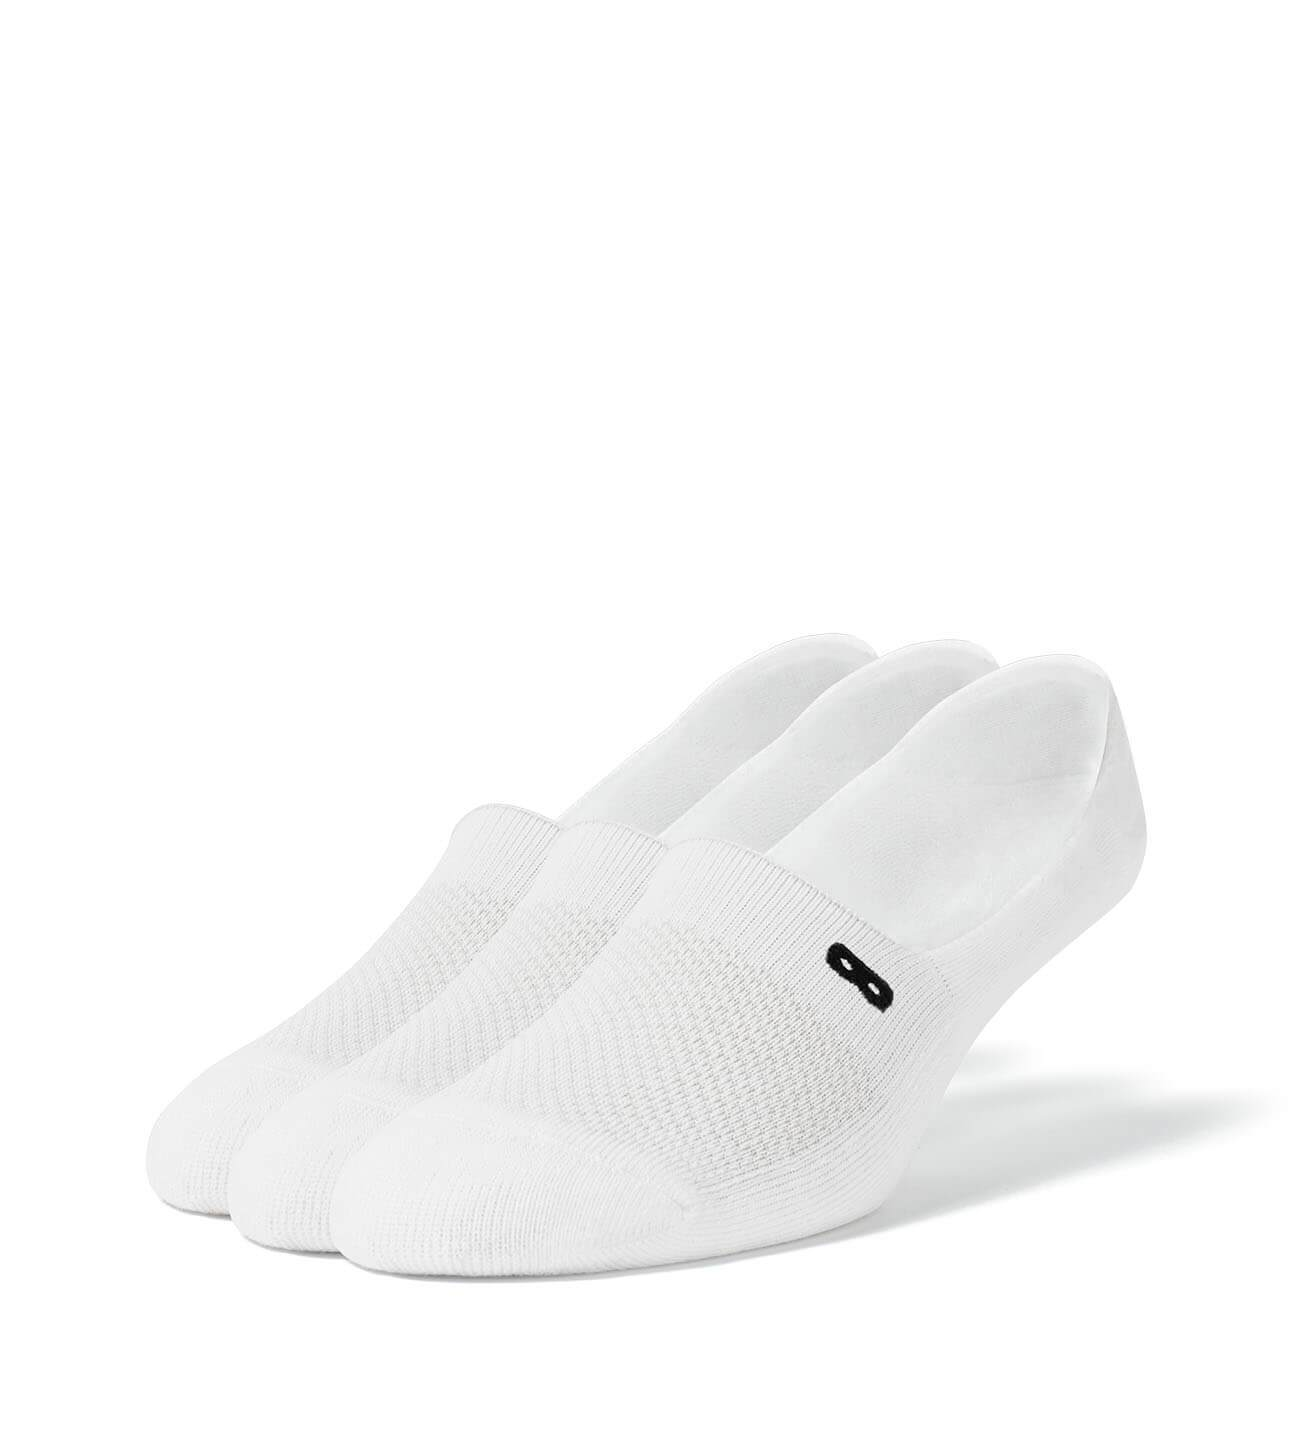 Whiteout Cushion Women's No Show Socks 3 Pack